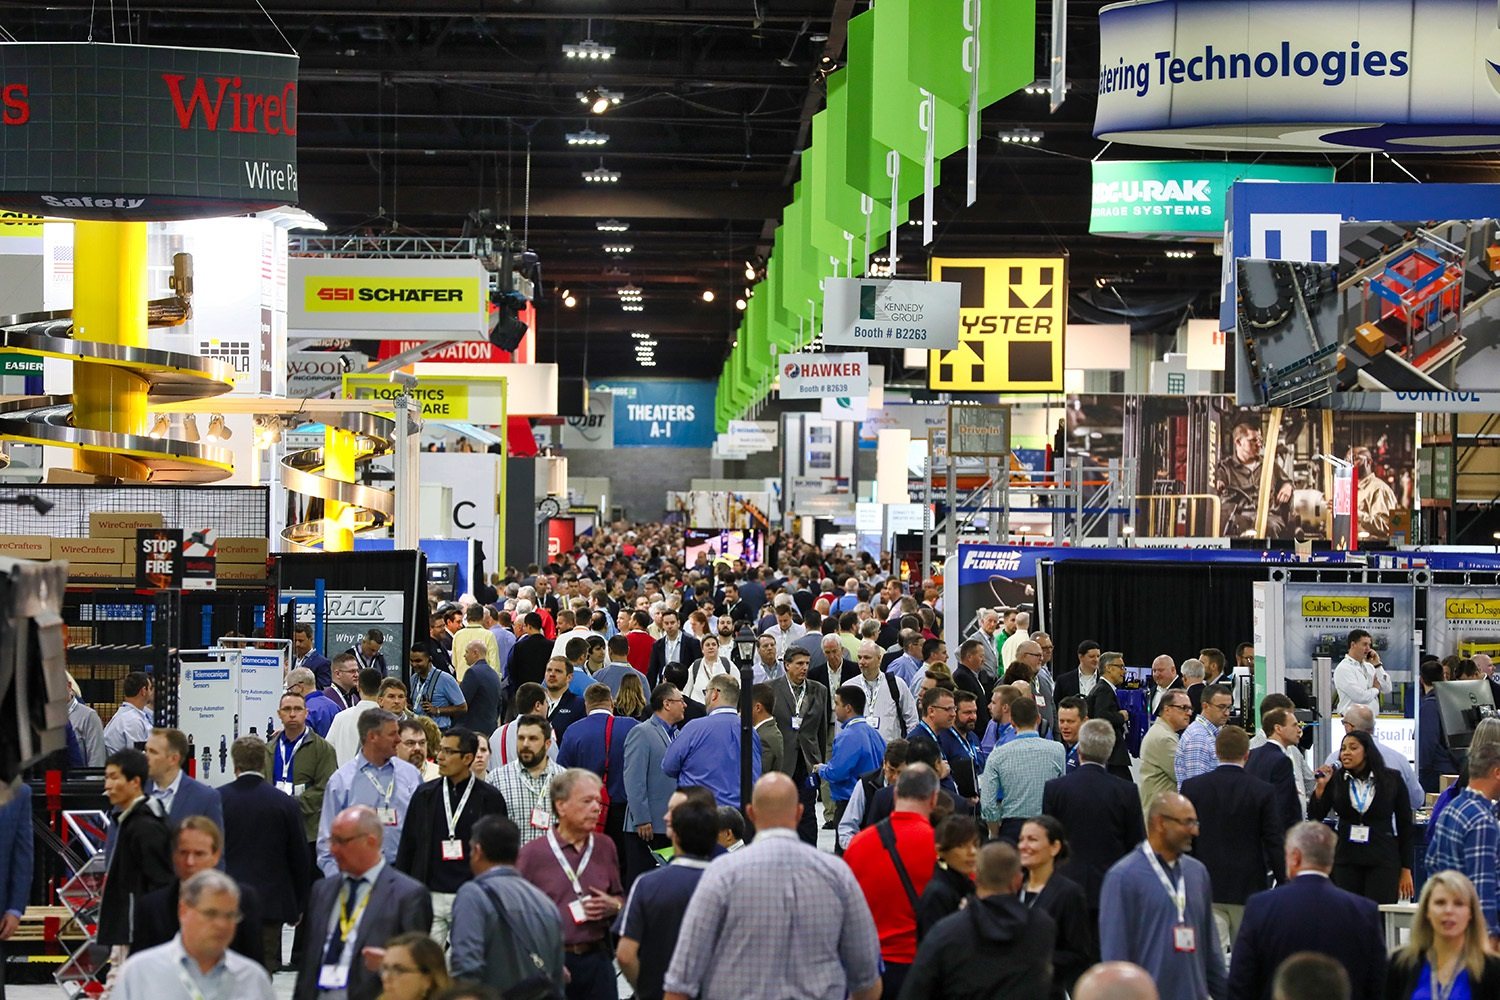 large-crowed-at-trade-show-exhibitor-booths